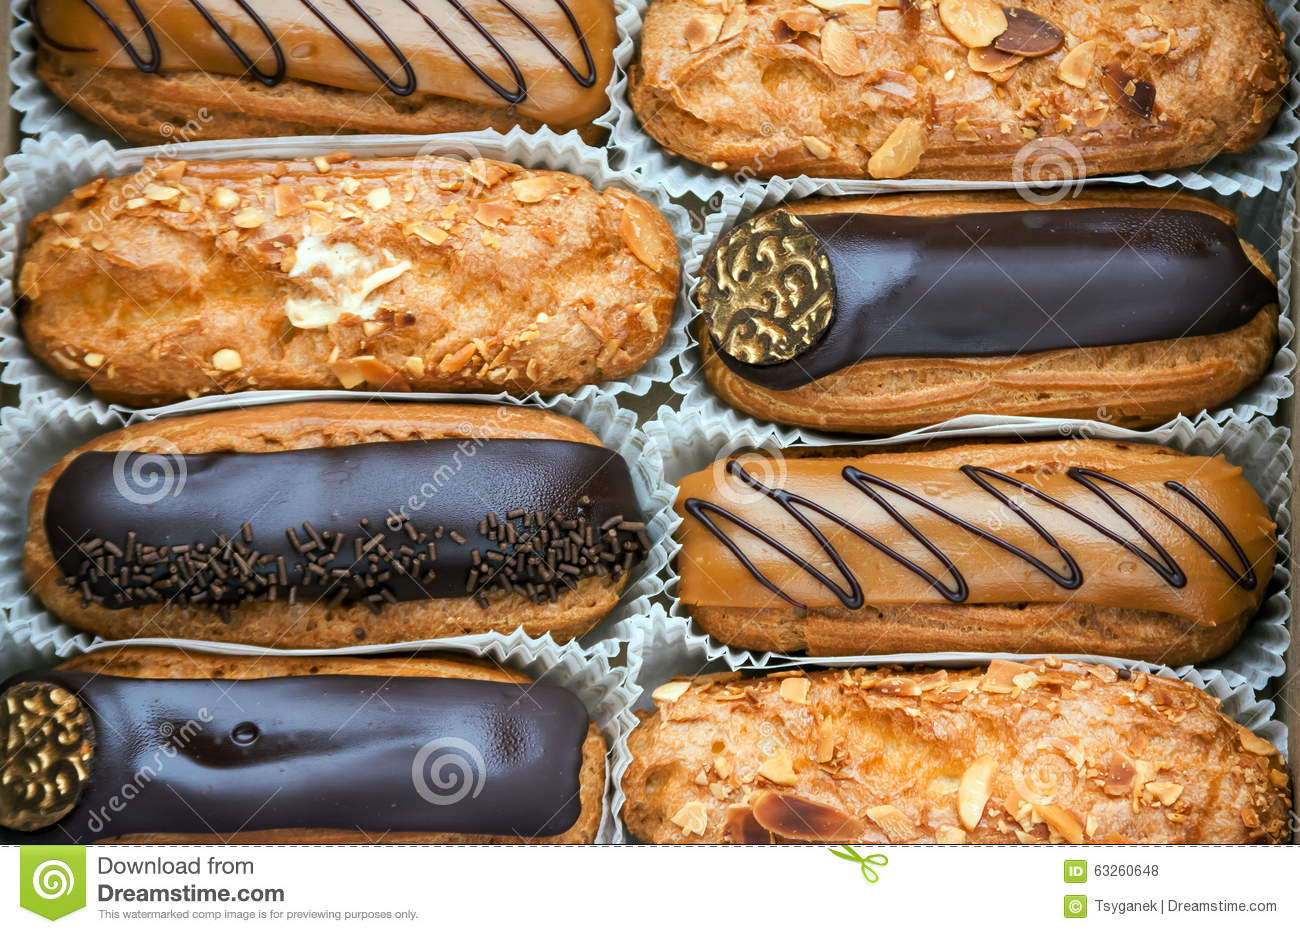 A box of eclairs